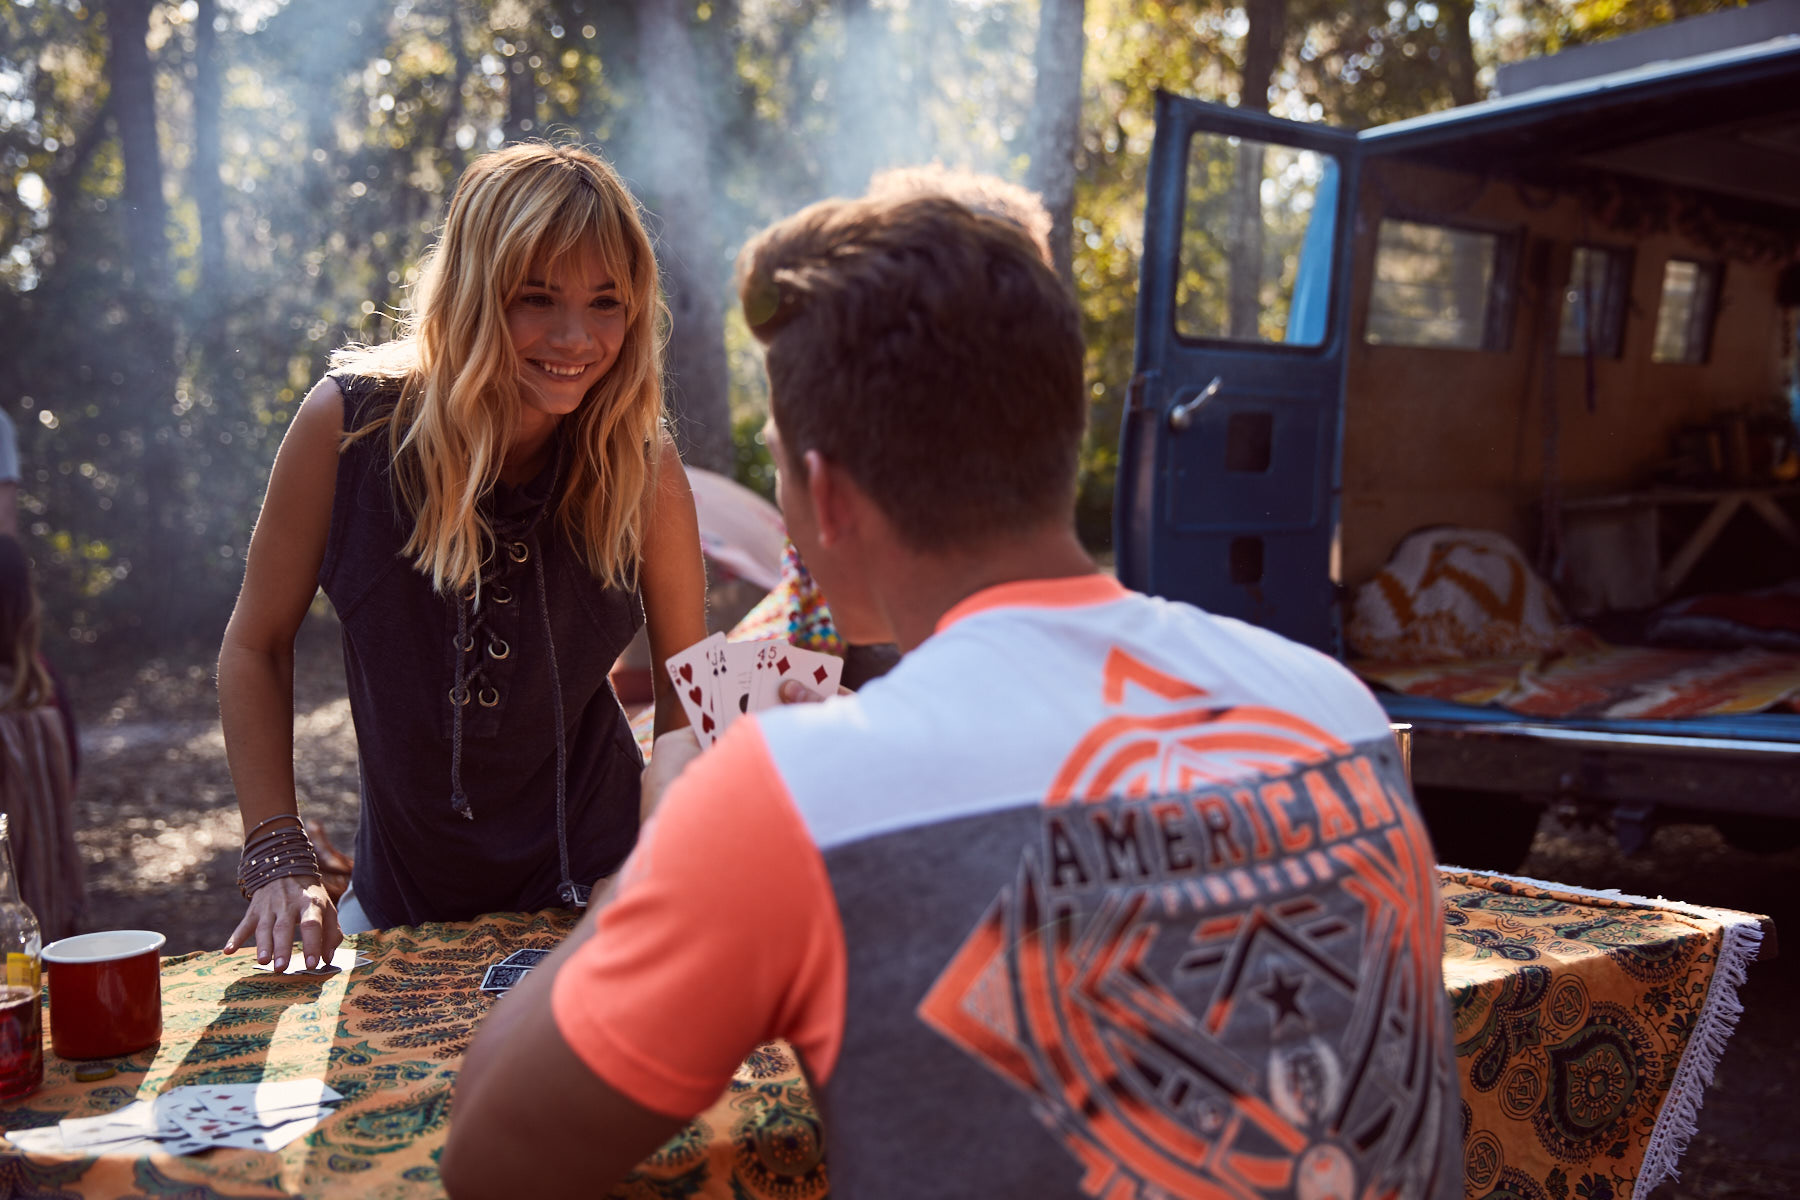 A young man and women, wearing Buckle clothing, playing cards with each other while on a friends camping trip.